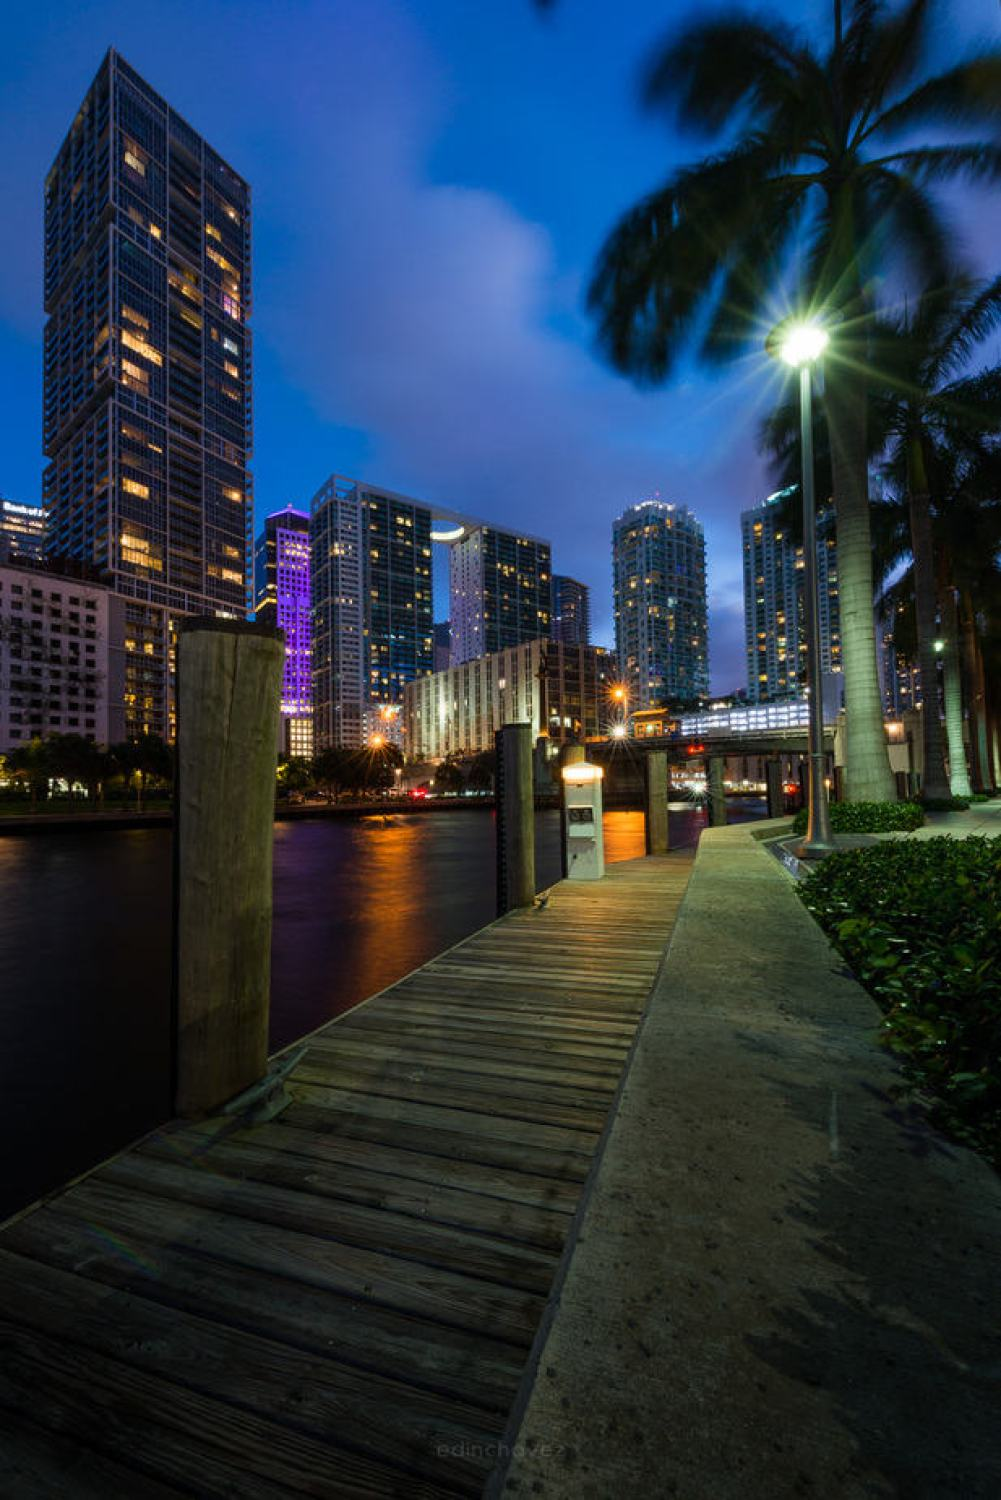 Miami after hours - image  on http://blog.edinchavez.com